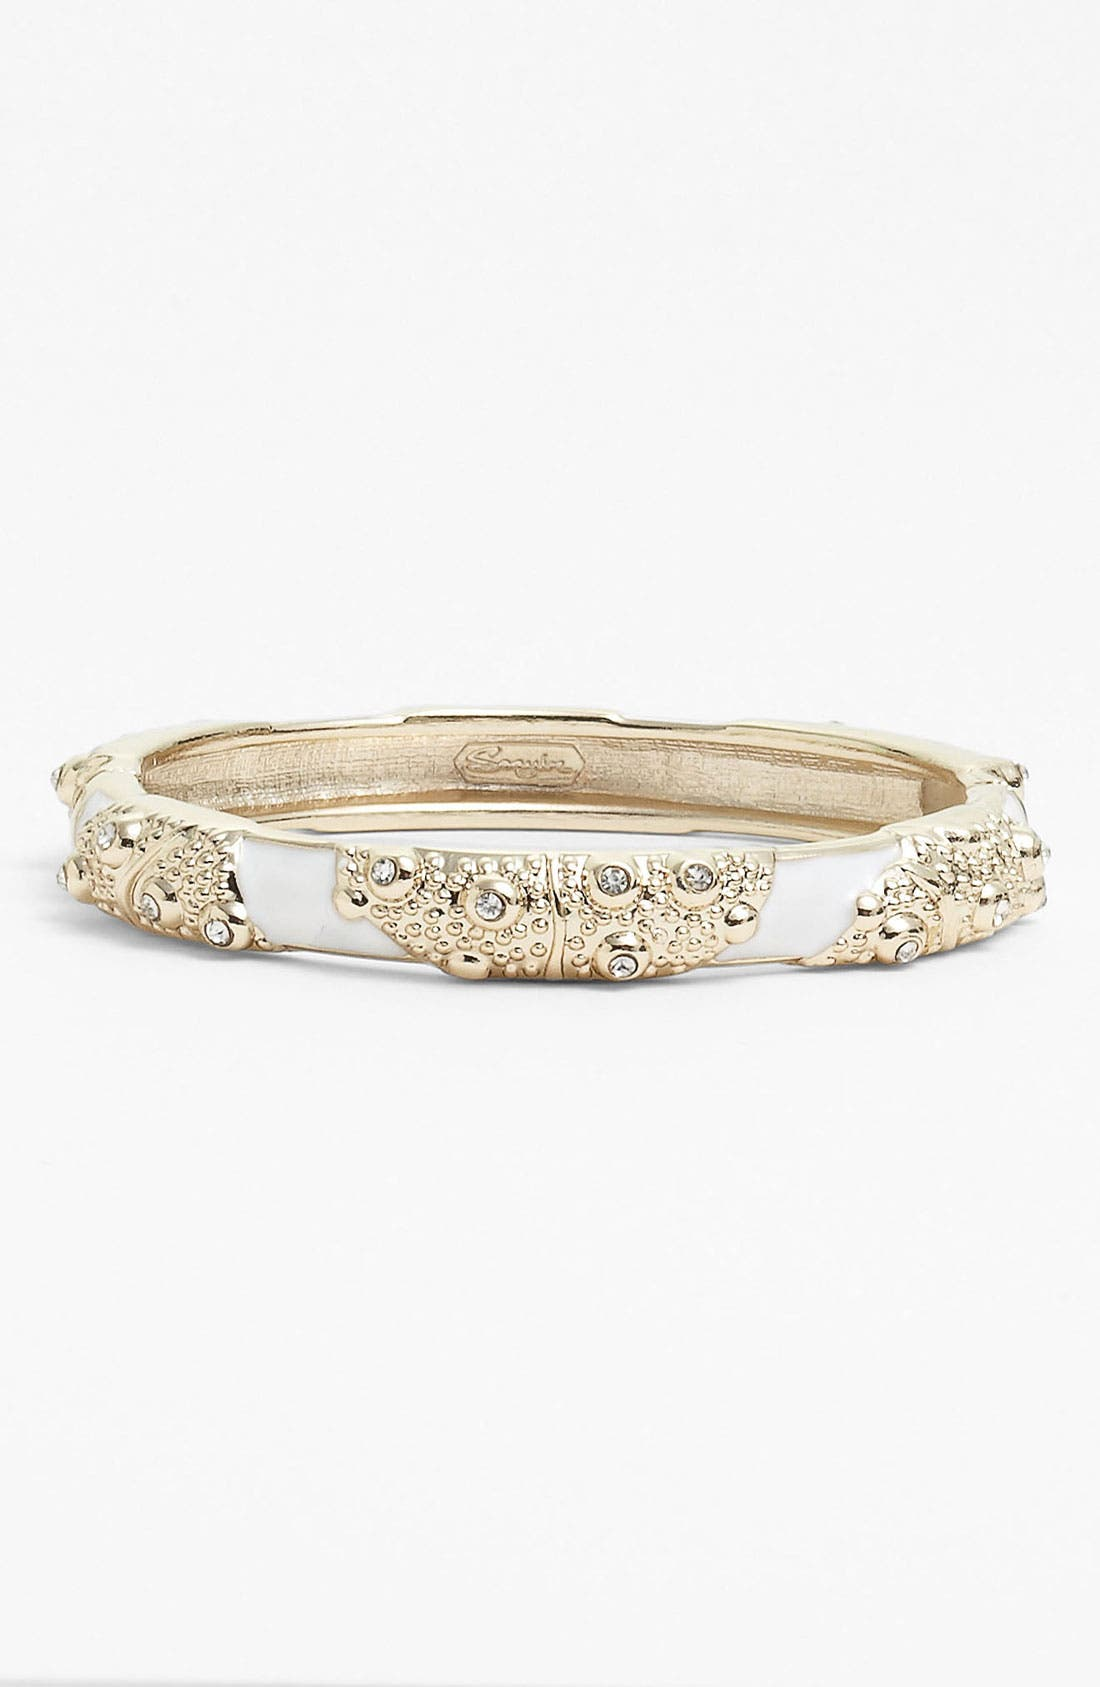 Main Image - Sequin 'Sea Urchin' Hinged Bangle